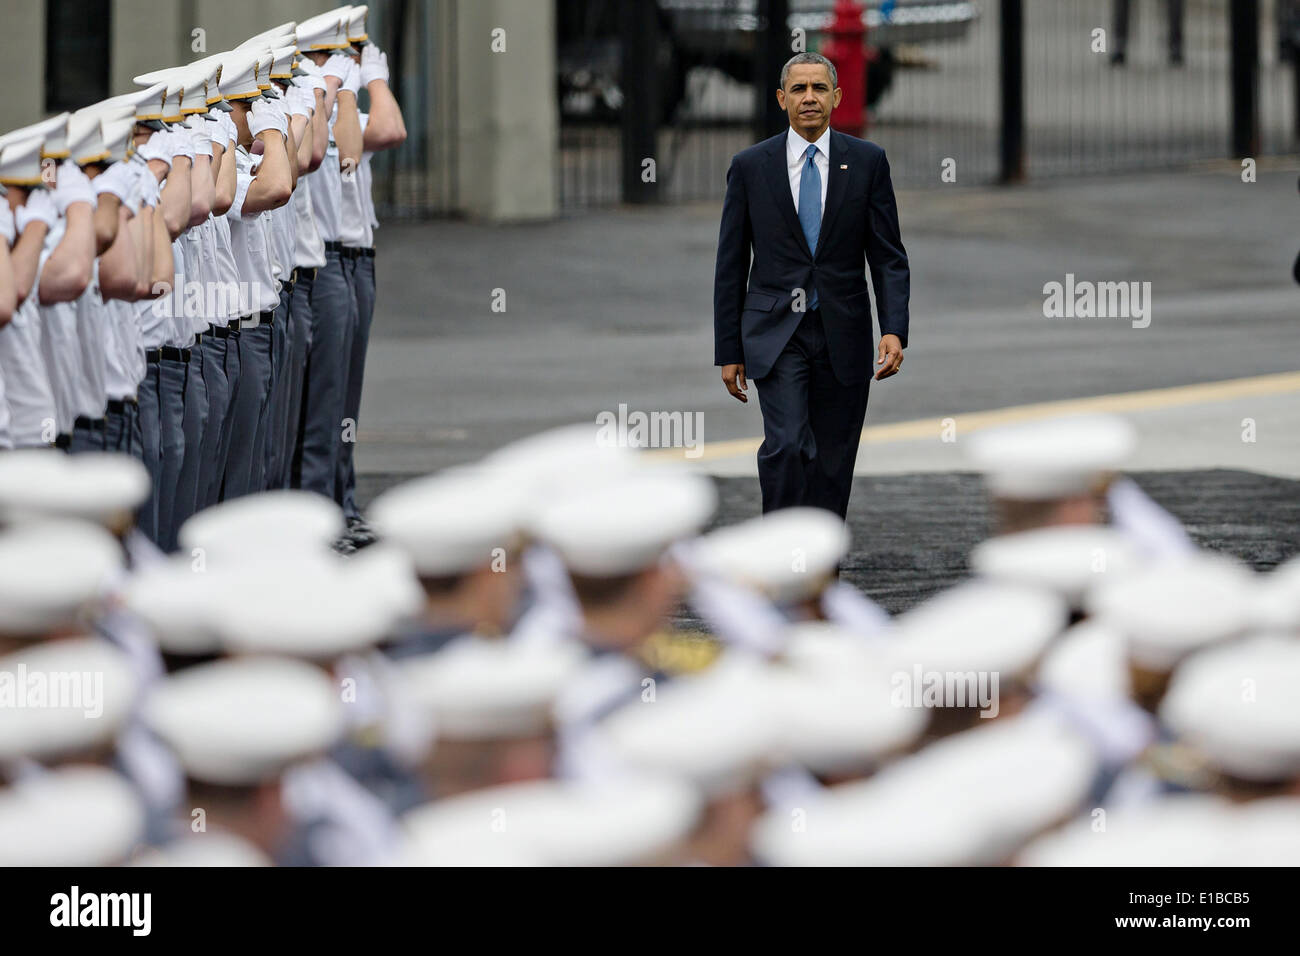 US President Barack Obama passes cadets as he enters Michie Stadium to give the commencement address during graduation - Stock Image